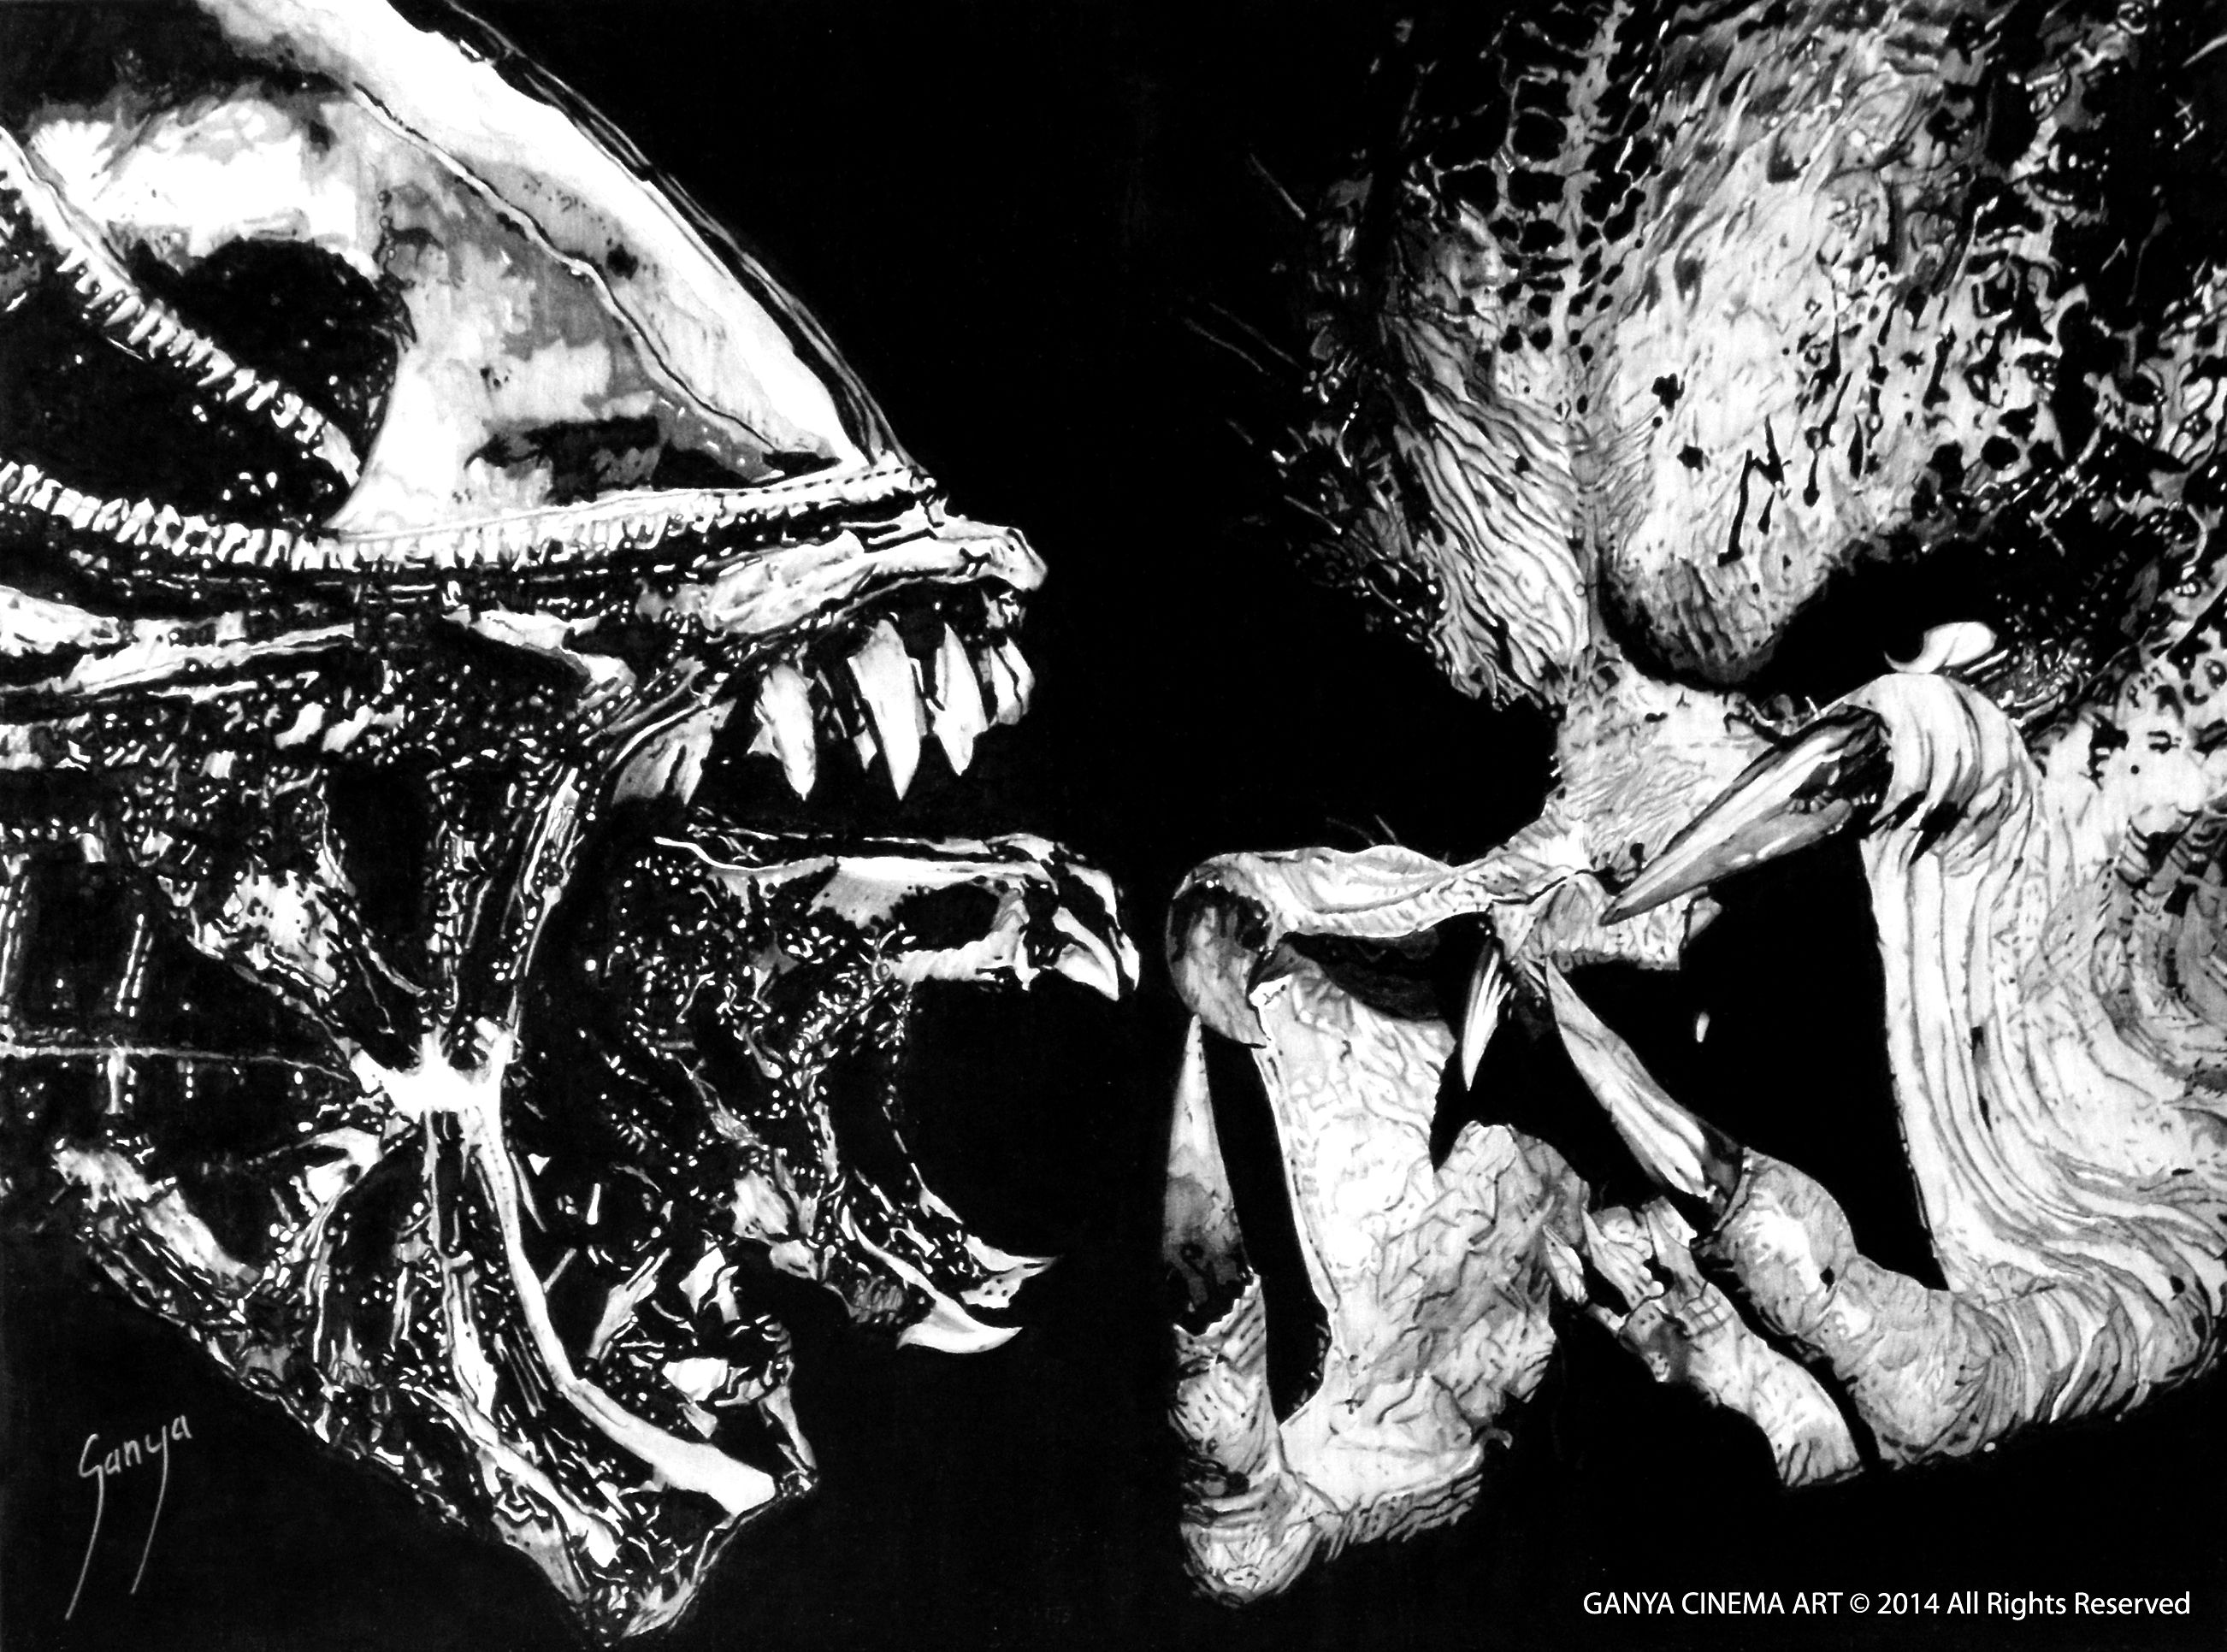 alien vs predator 2004 graphite pencil on wood 45 x 60